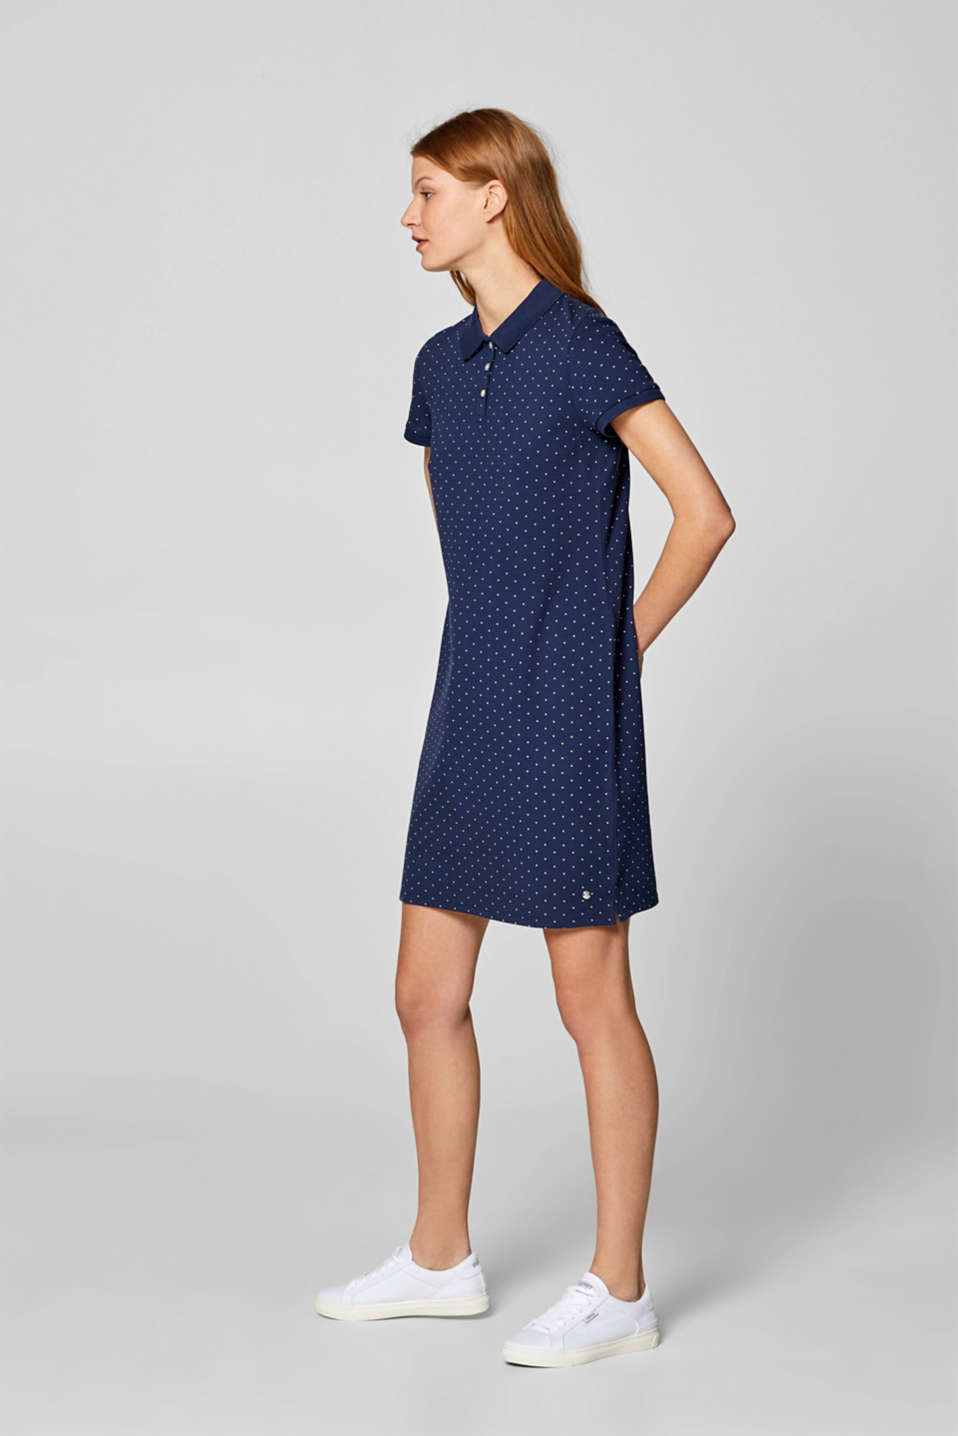 Esprit - Stretchy piqué dress with a polka dot print